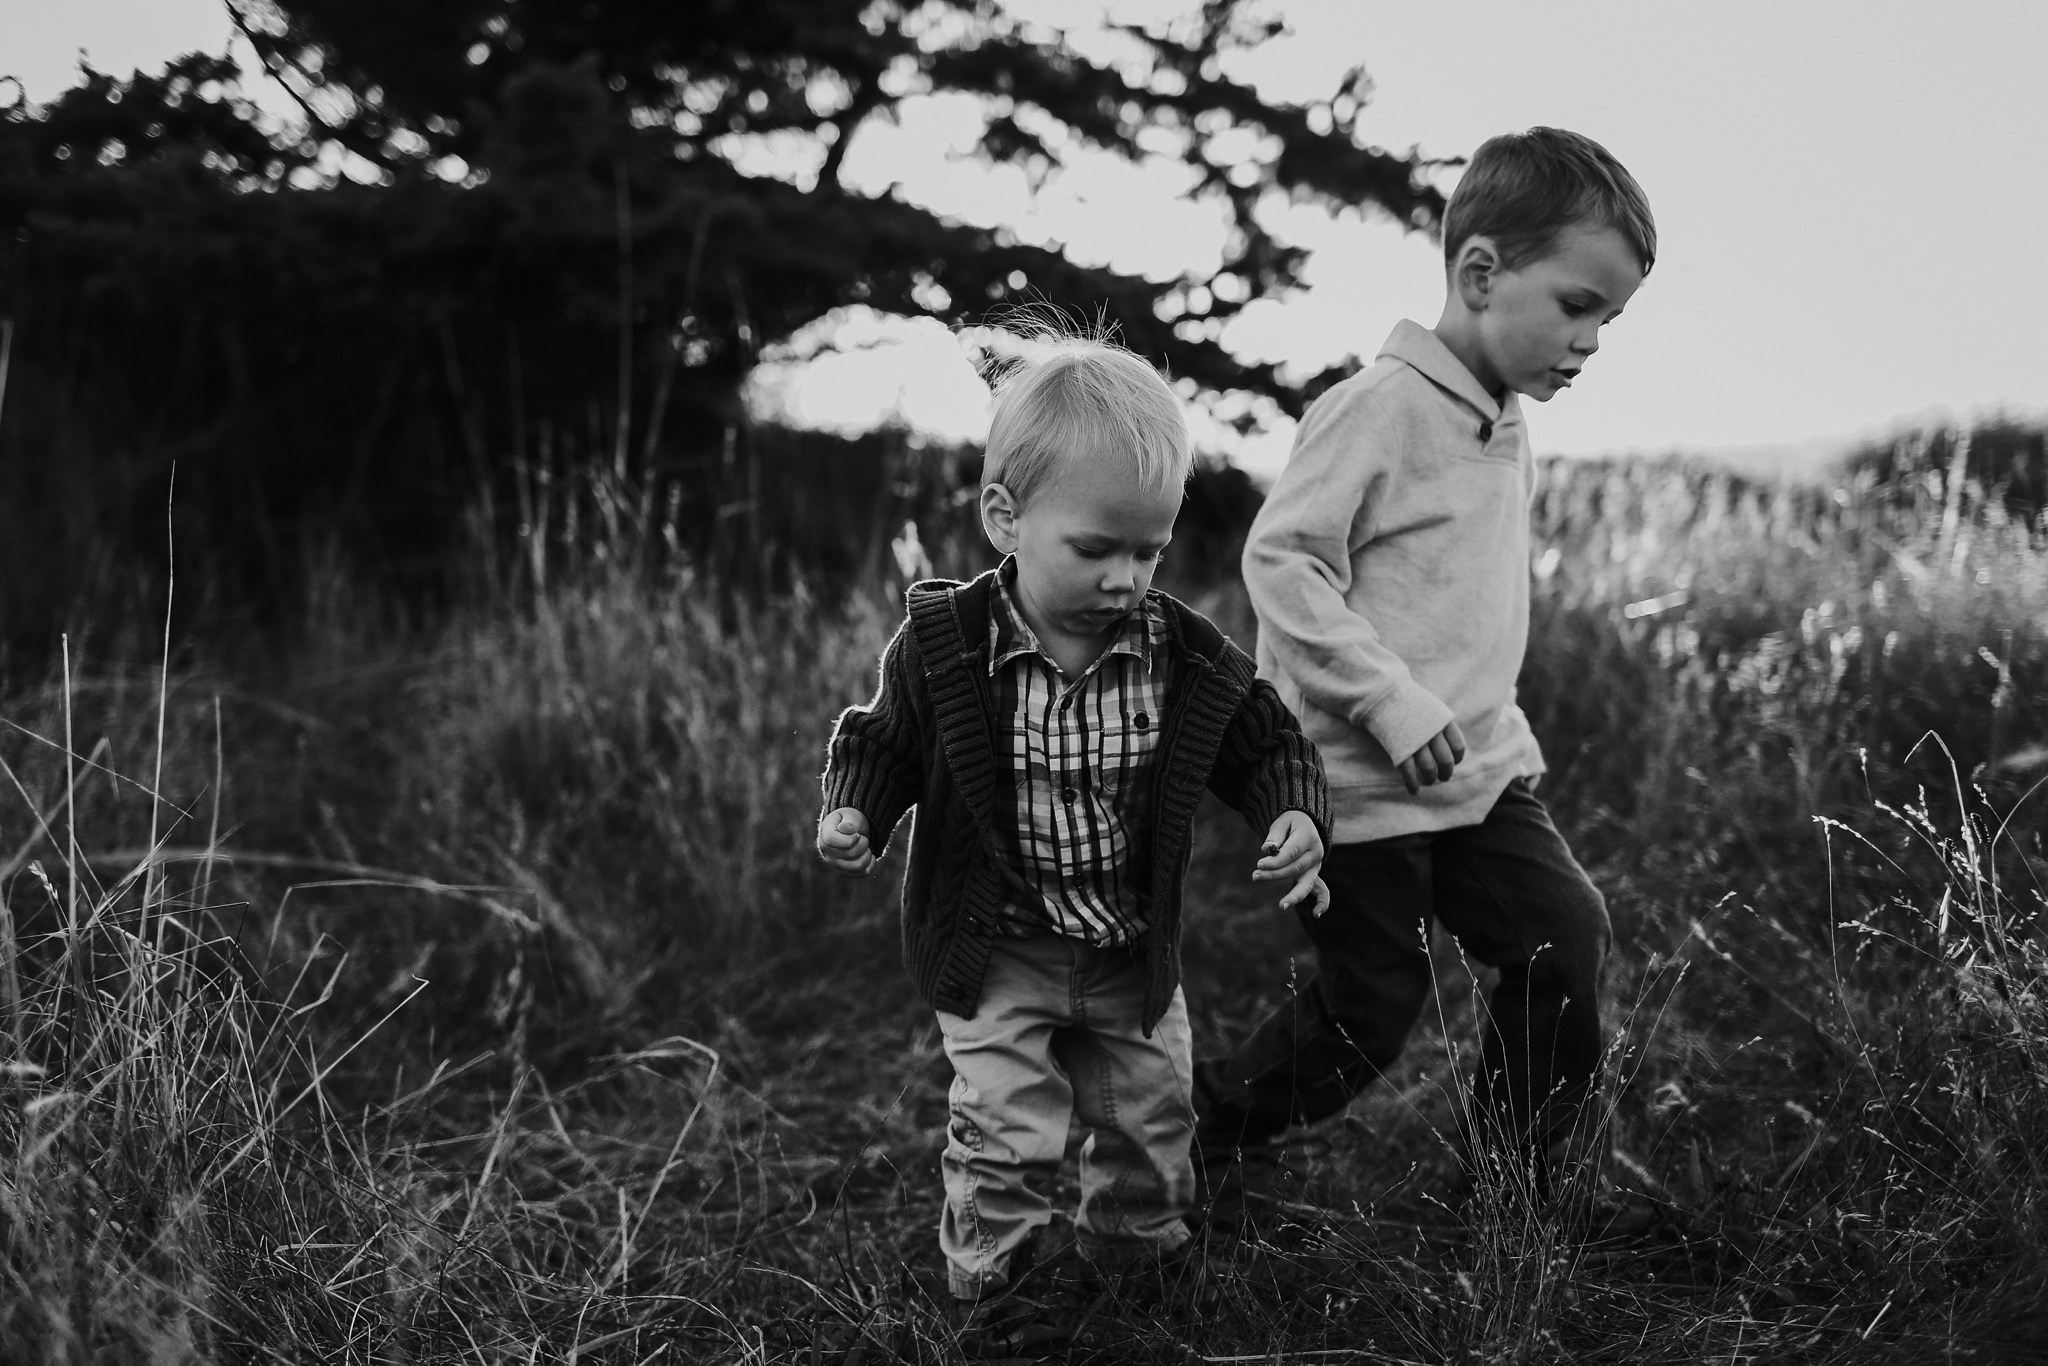 Whidbey-Island-Family-Photographer-Kara-Chappell-Photography_1074.jpg